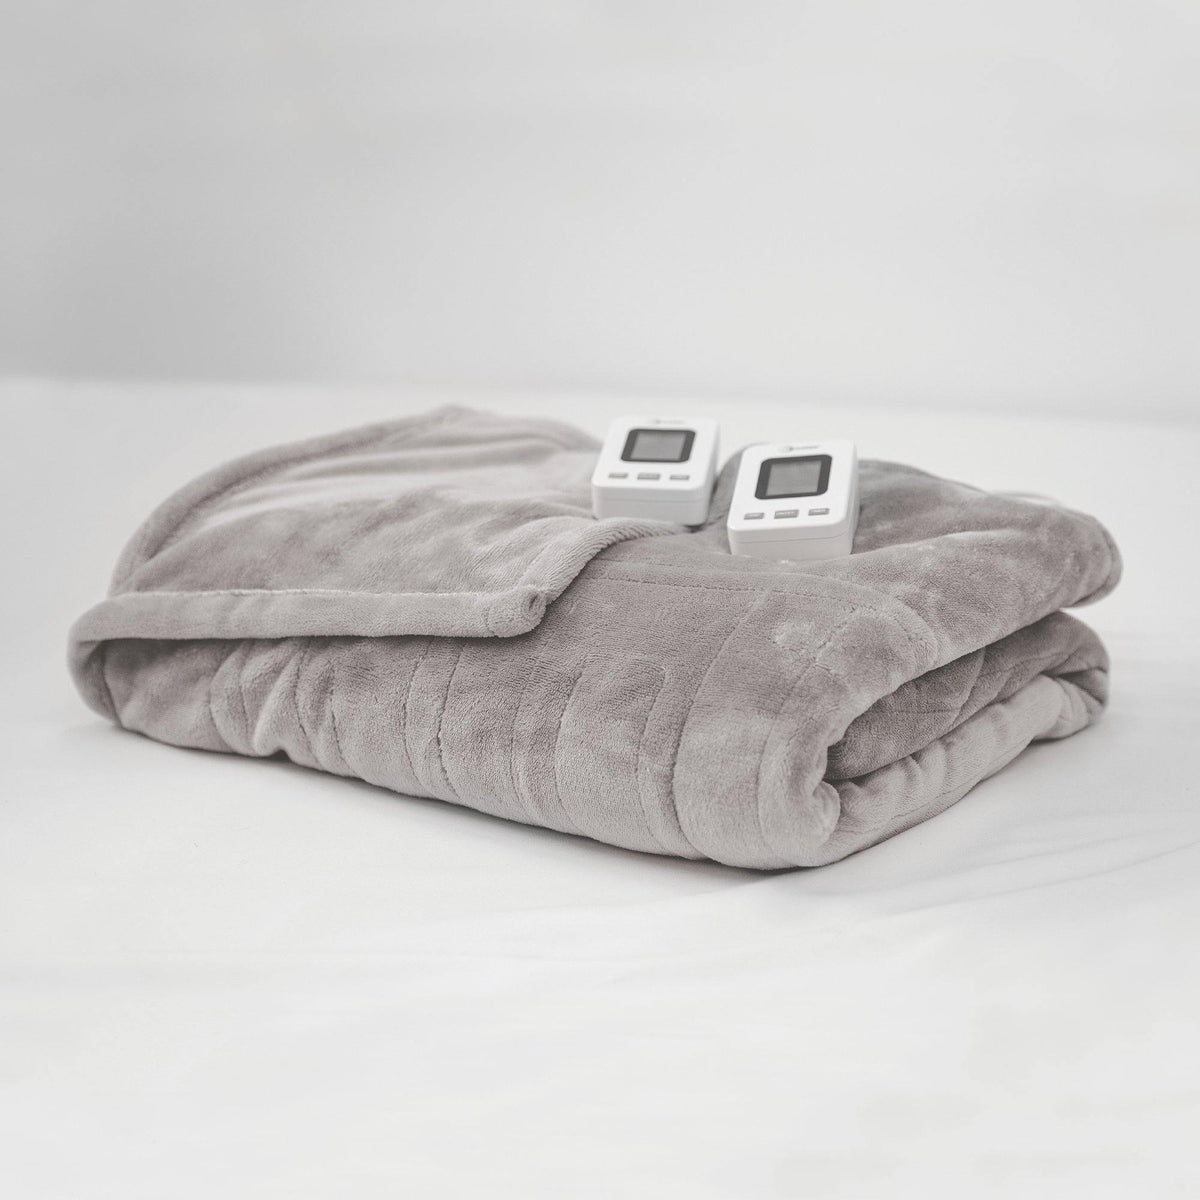 BlanQuil Toasty Heating Blanket (Ships 10/24)